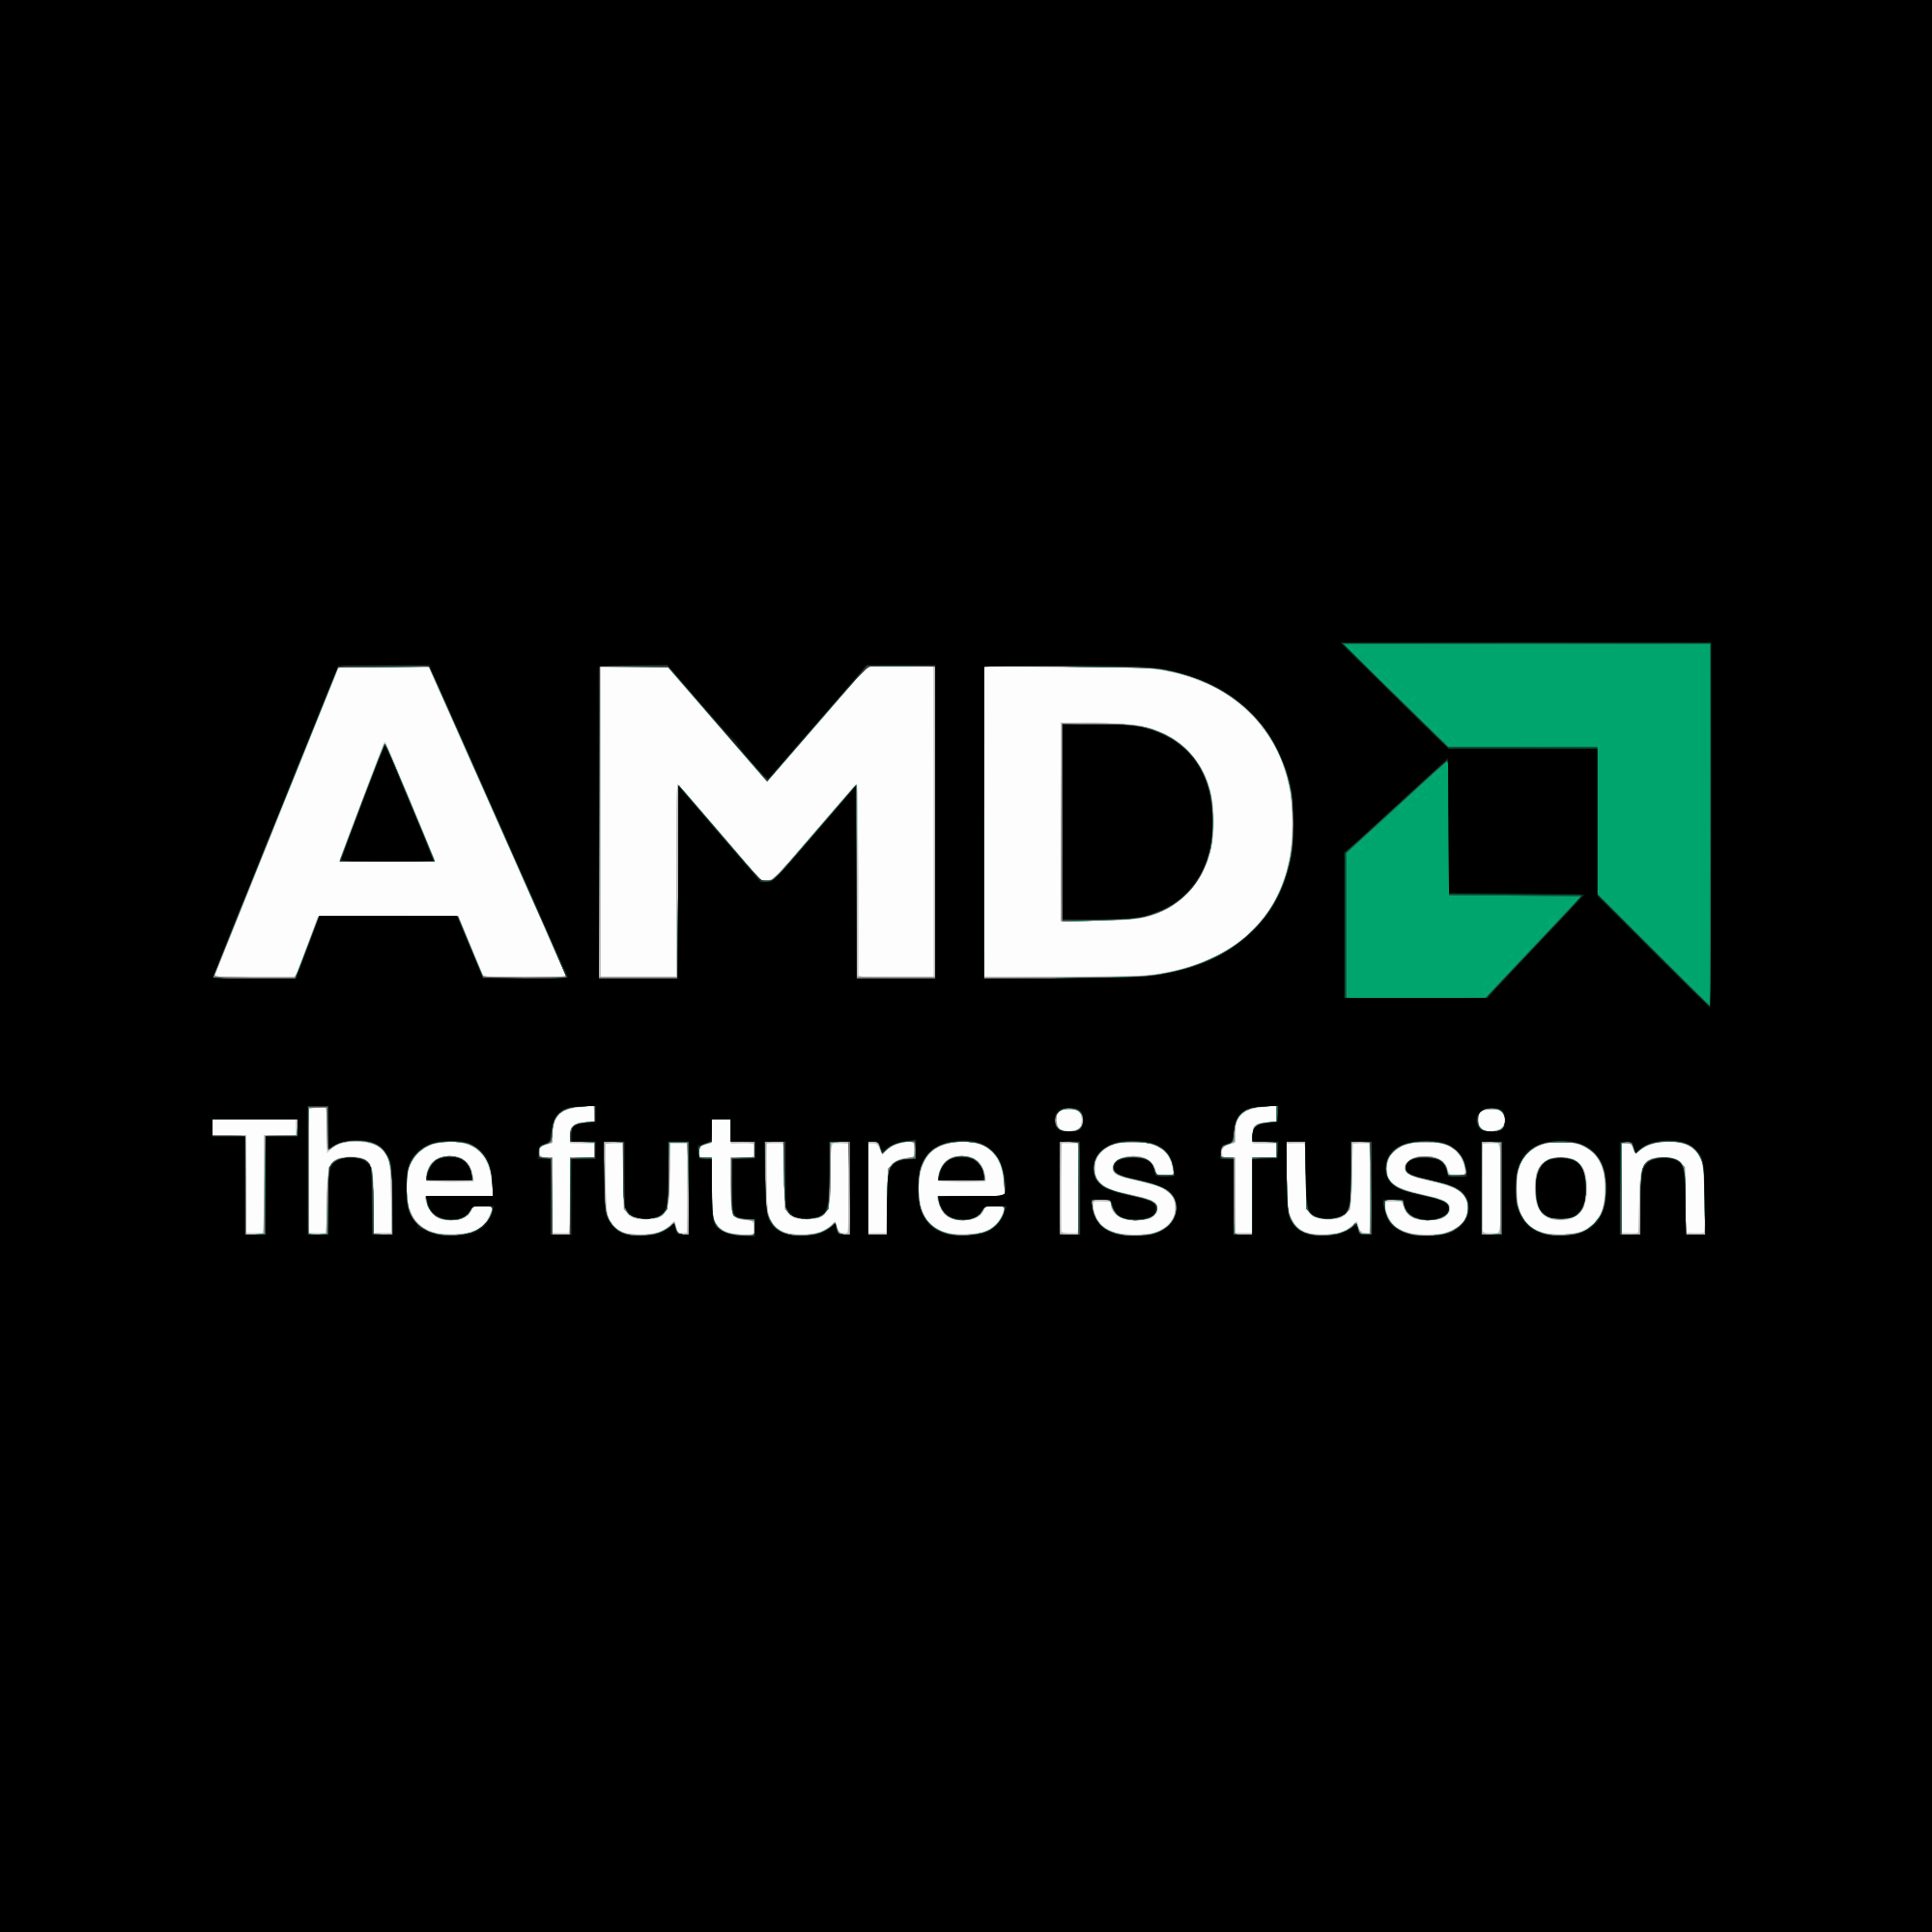 Images of Amd | 2000x2000